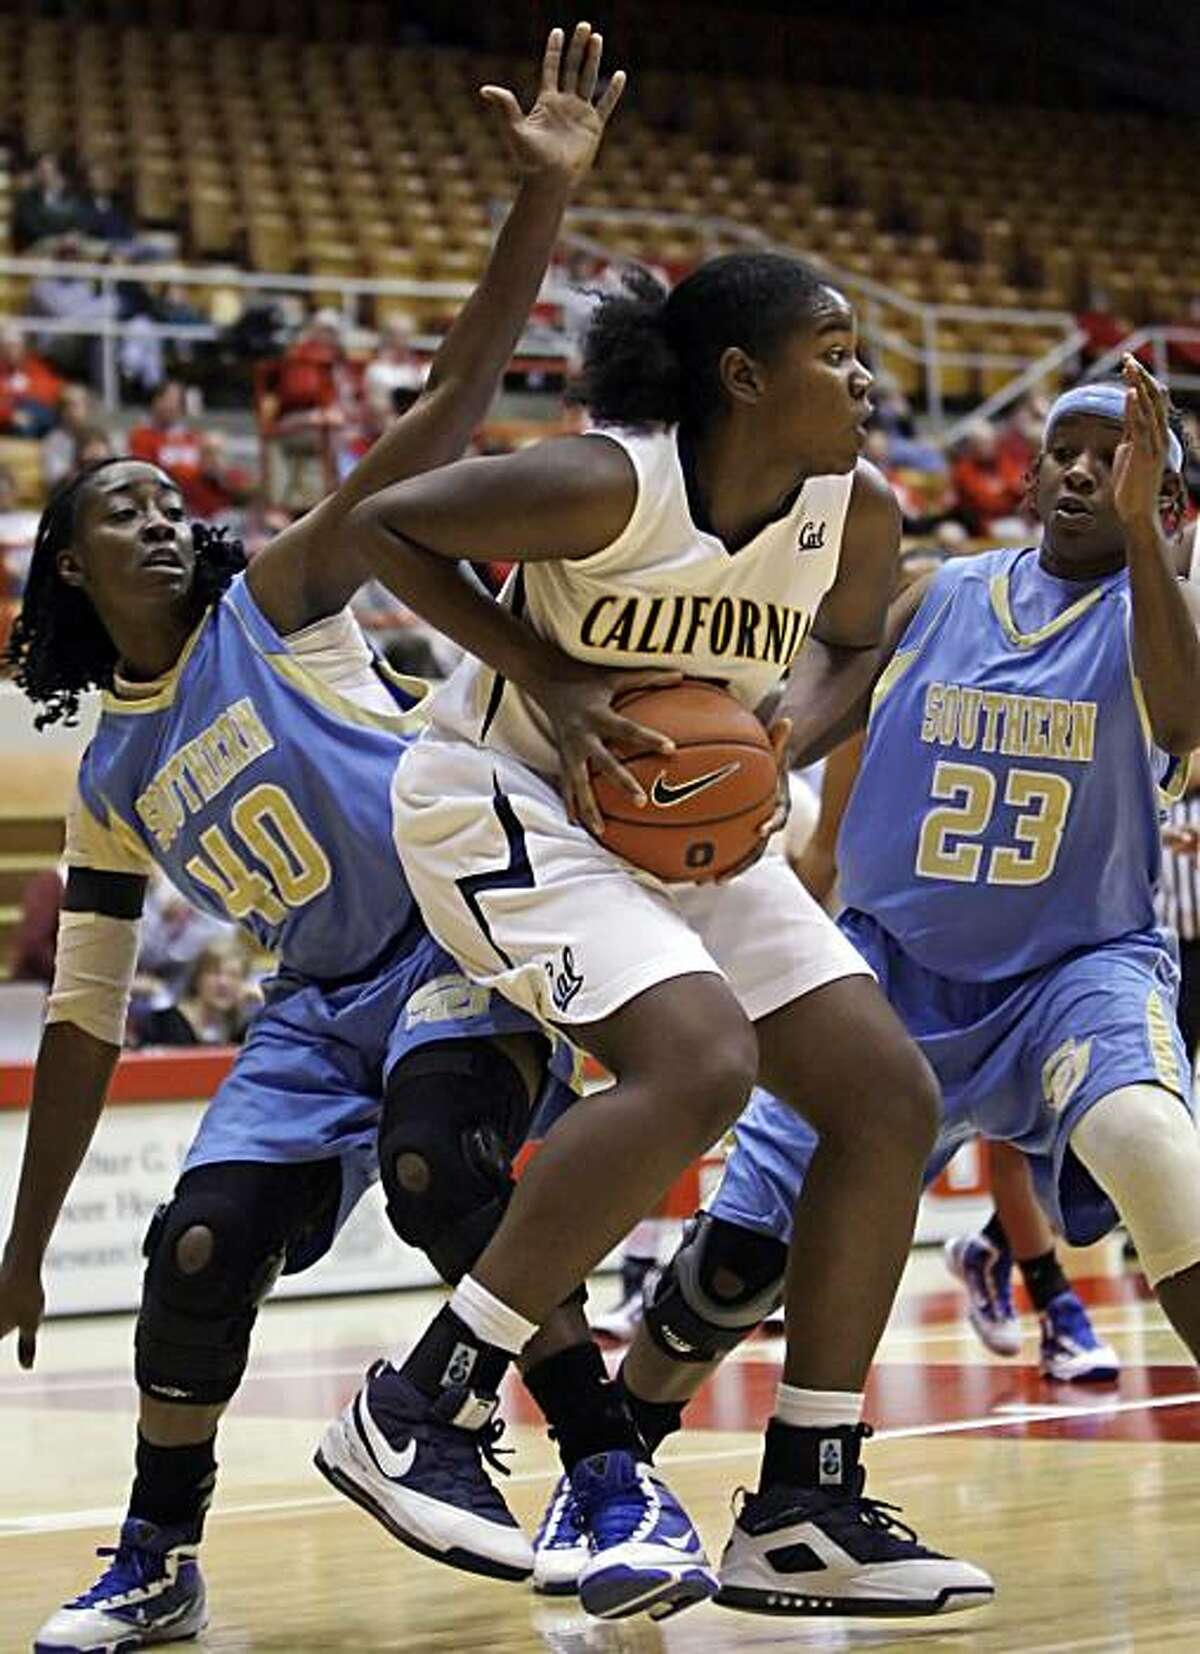 California's DeNesha Stallworth, center, grabs a rebound from Southern's Freda Allen, left, and Kimberly Griffin during the first half of an NCAA college basketball game Saturday, Nov. 28, 2009, in Columbus, Ohio. (AP Photo/Jay LaPrete)